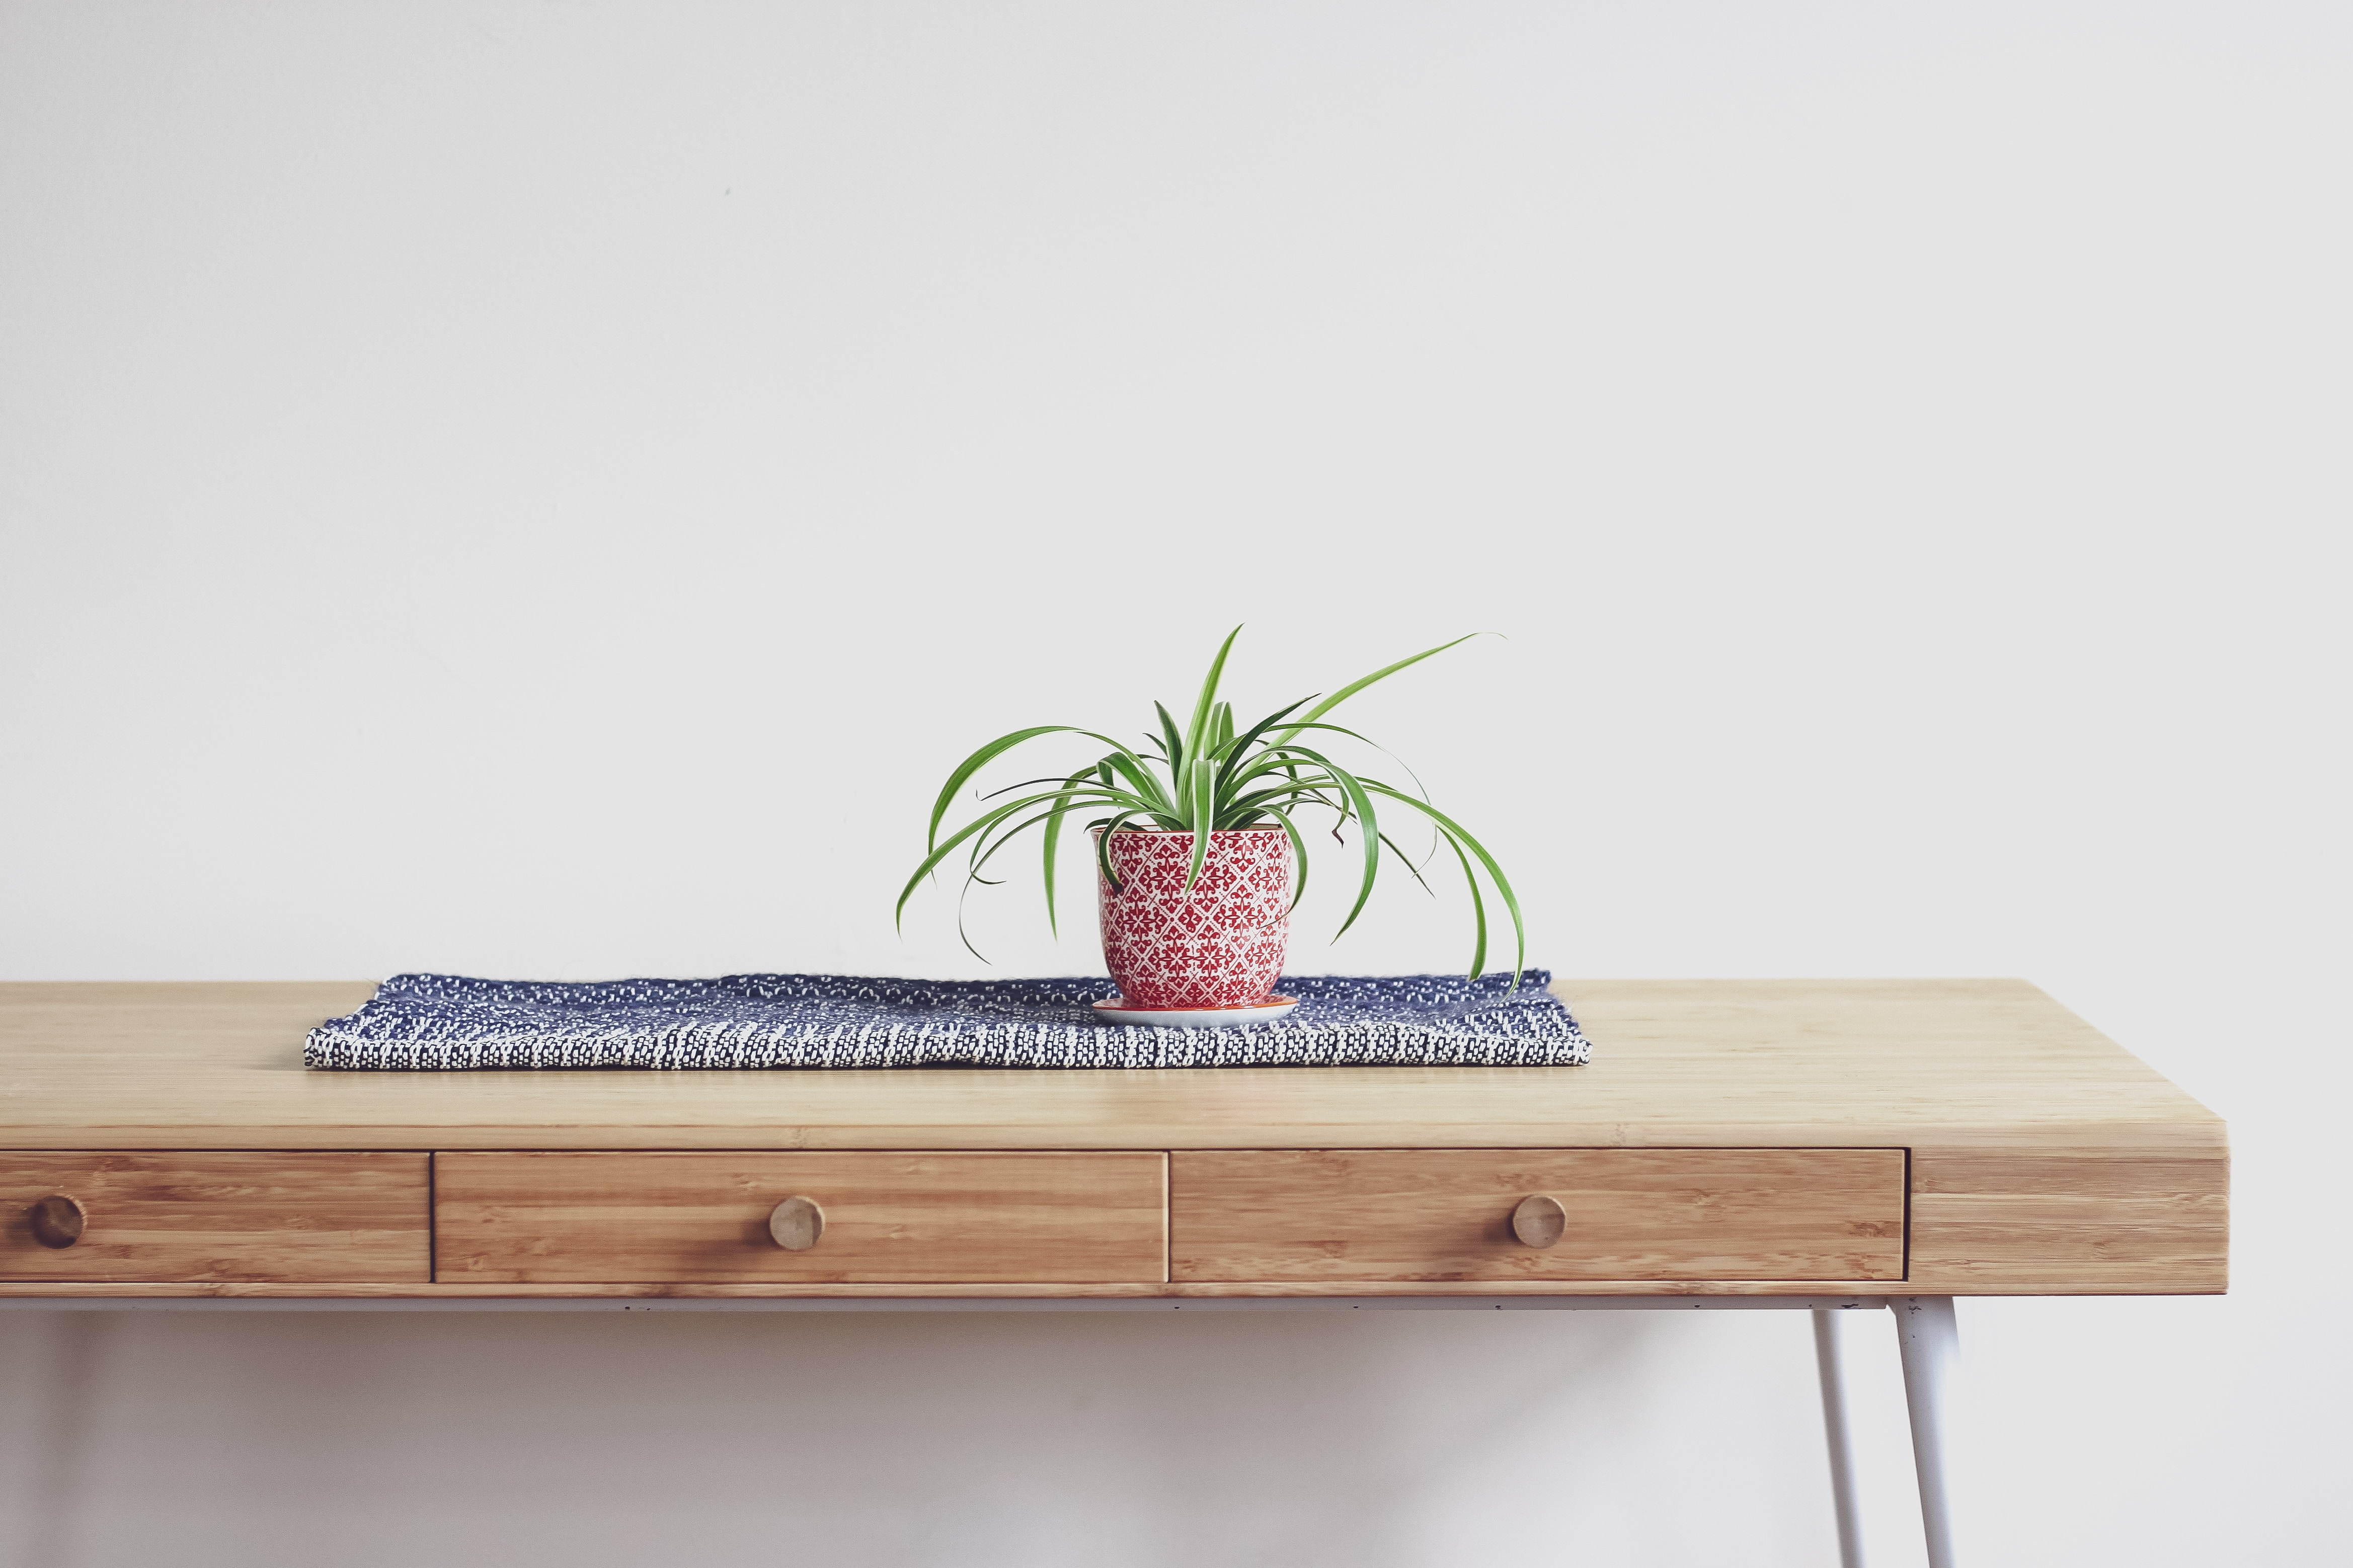 An image of a Spider Plant on a wooden table.